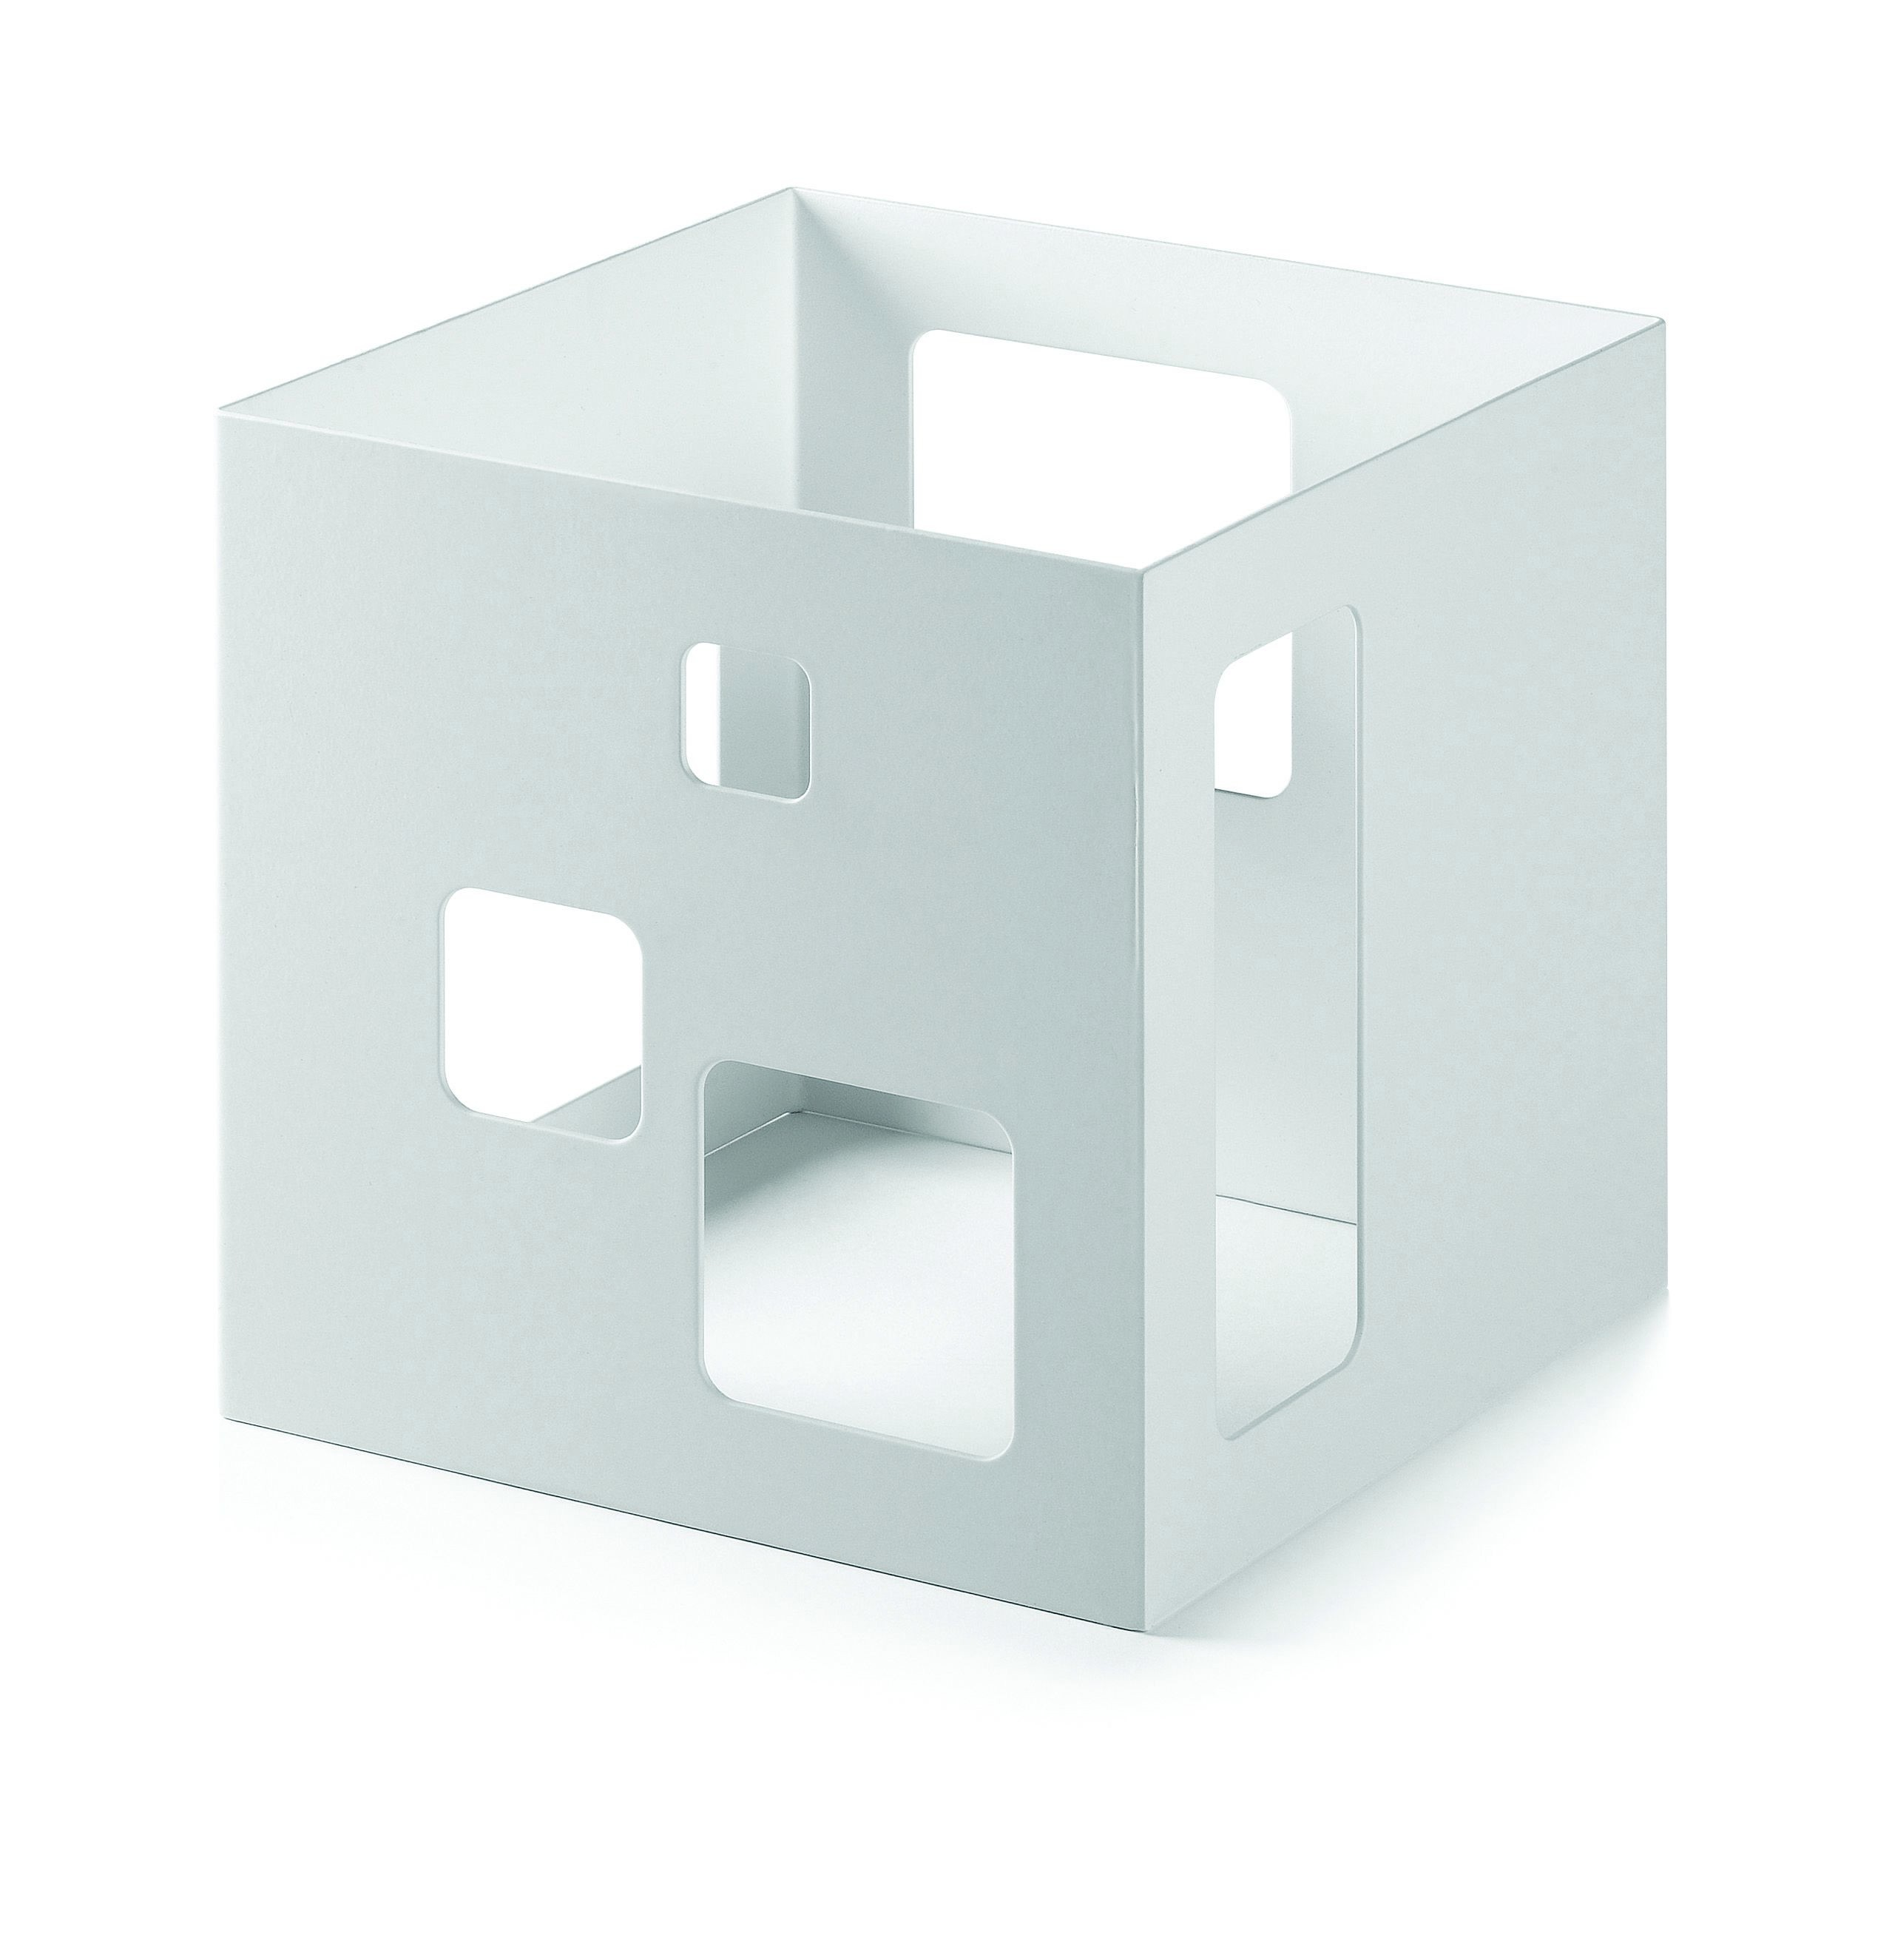 Square Riser-White Matte Powder Coated Steel Finish- 7